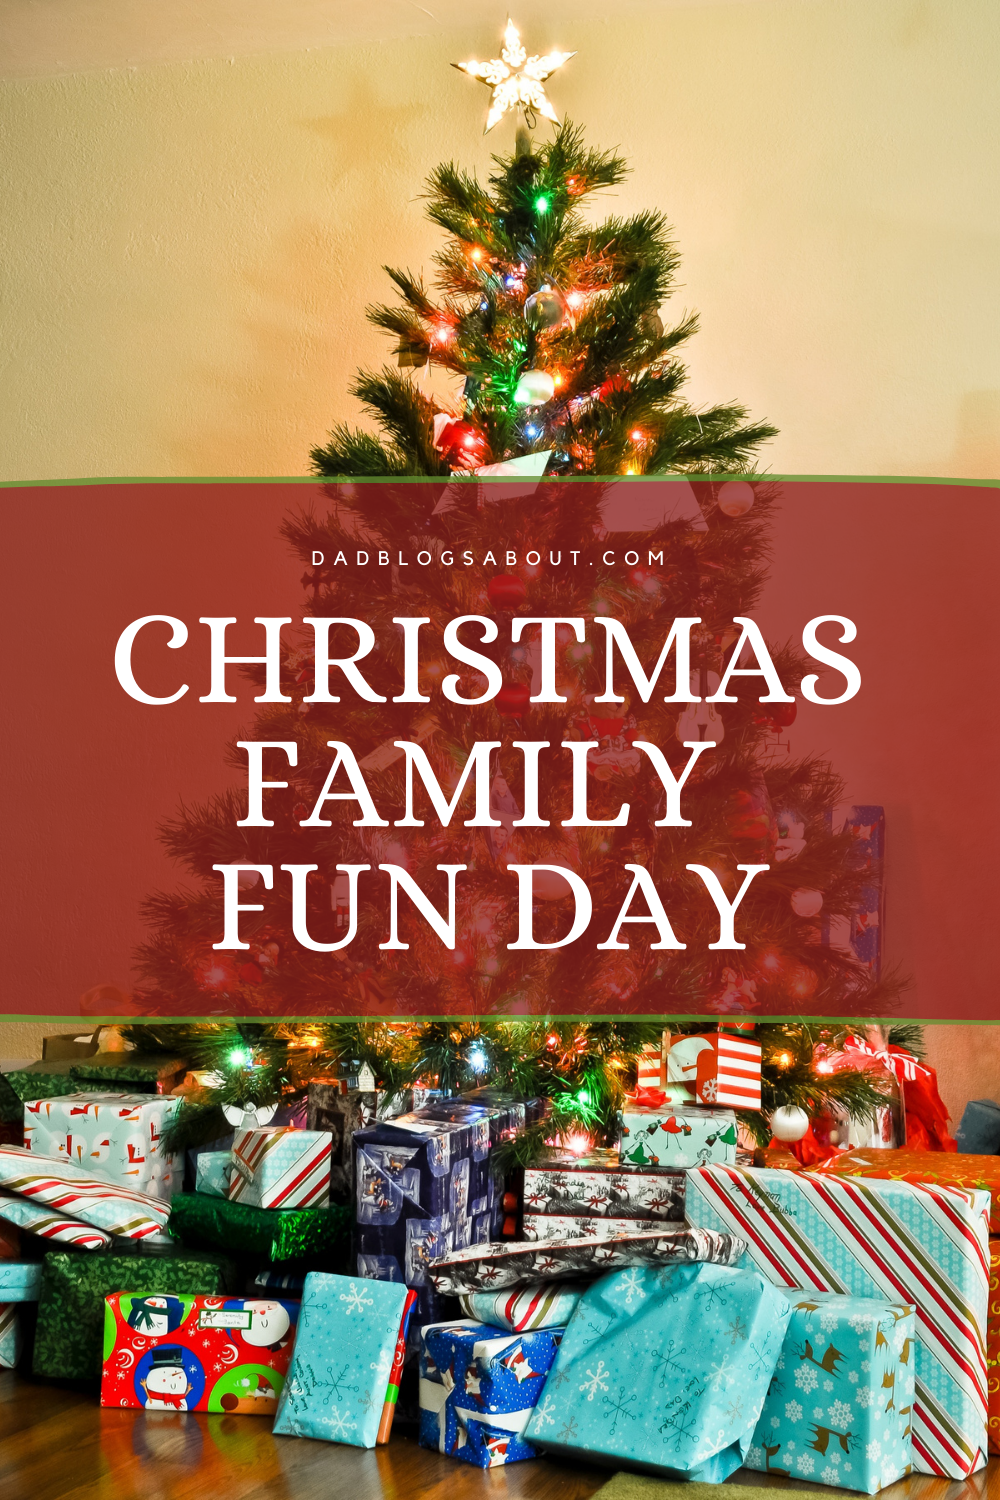 Christmas is a time for the whole family to come together and have some fun. What better way than to play some games? Following are four games that are sure to invoke smiles and laughter from everyone. More at DadBlogsAbout.com